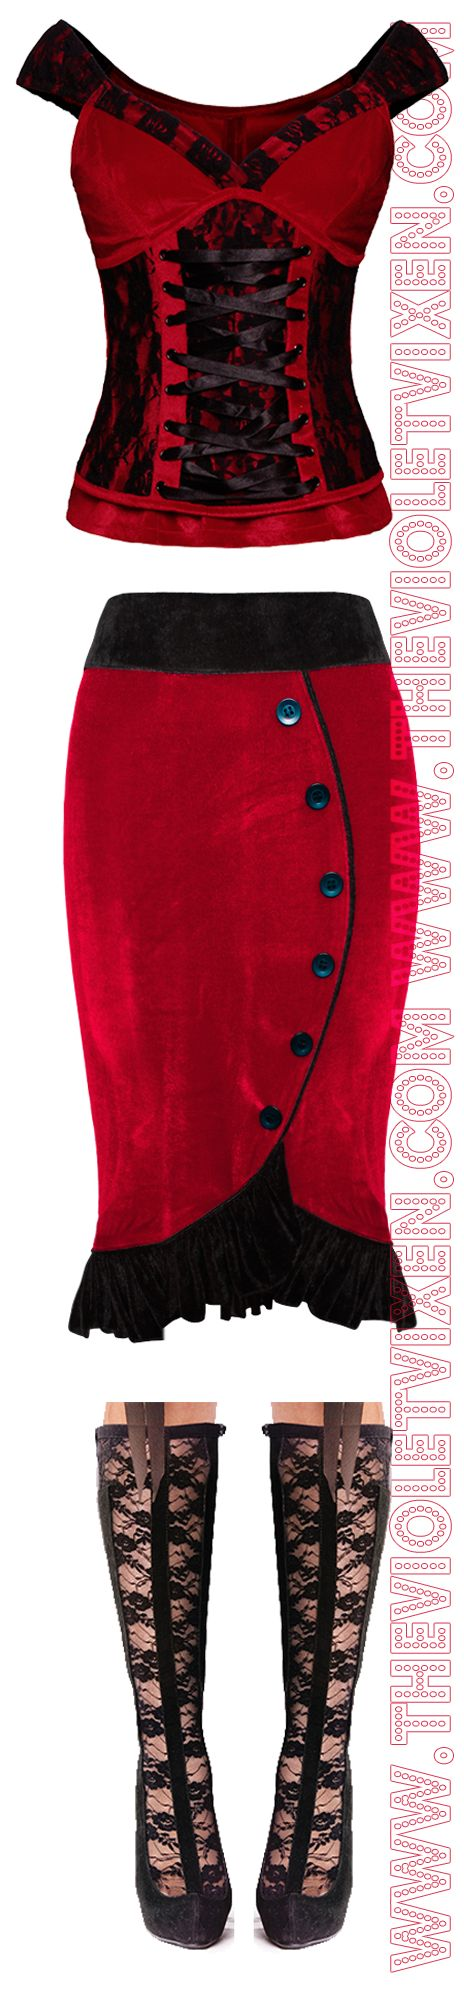 Velvet, lace, ruffles and more lace!! Love this combo!  Top --> http://thevioletvixen.com/clothing/laced-velvet-crush-red-top/ Skirt --> http://thevioletvixen.com/clothing/sashas-sweet-shorty-red-skirt/ Boots --> http://thevioletvixen.com/shoes/a-discreet-lace-tryst/